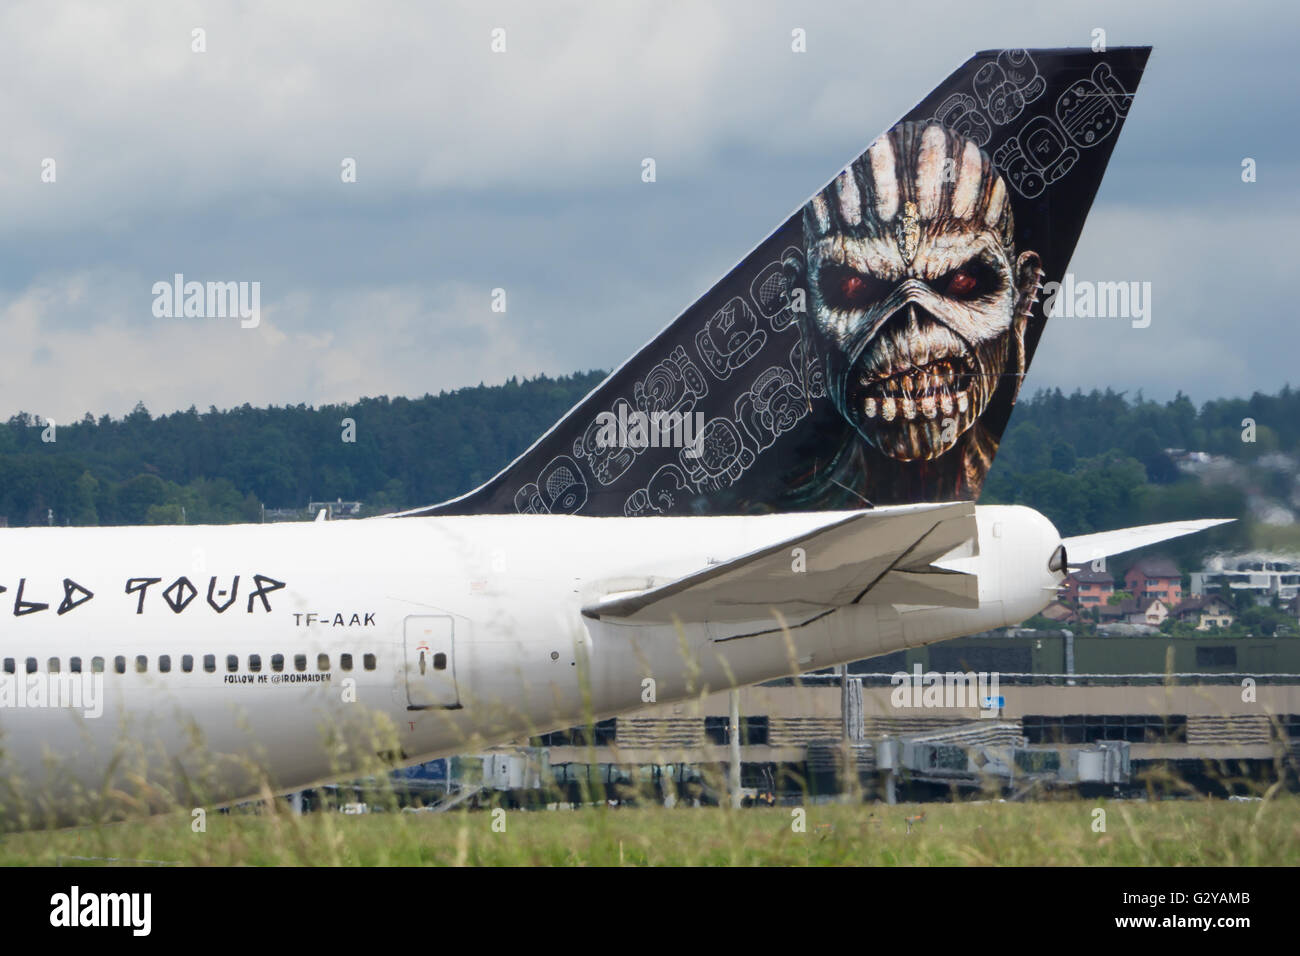 ed force one iron maiden boeing b747 428 in z rich schweiz stockfoto bild 105092635 alamy. Black Bedroom Furniture Sets. Home Design Ideas